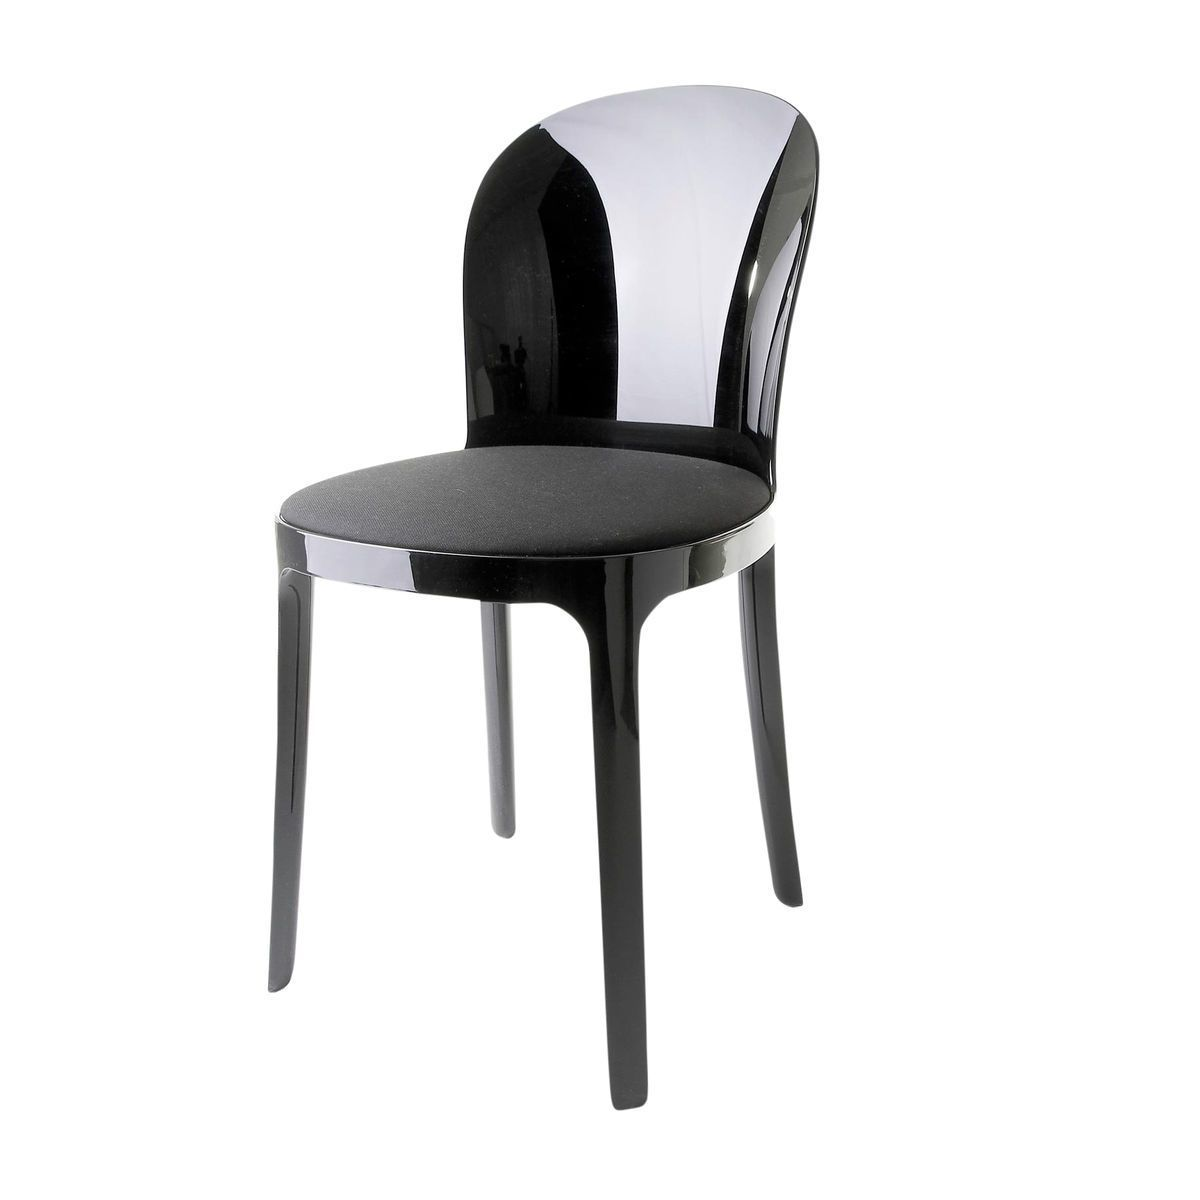 Magis Vanity Chair Black Fabric Kvadrat Field 192 Cushion